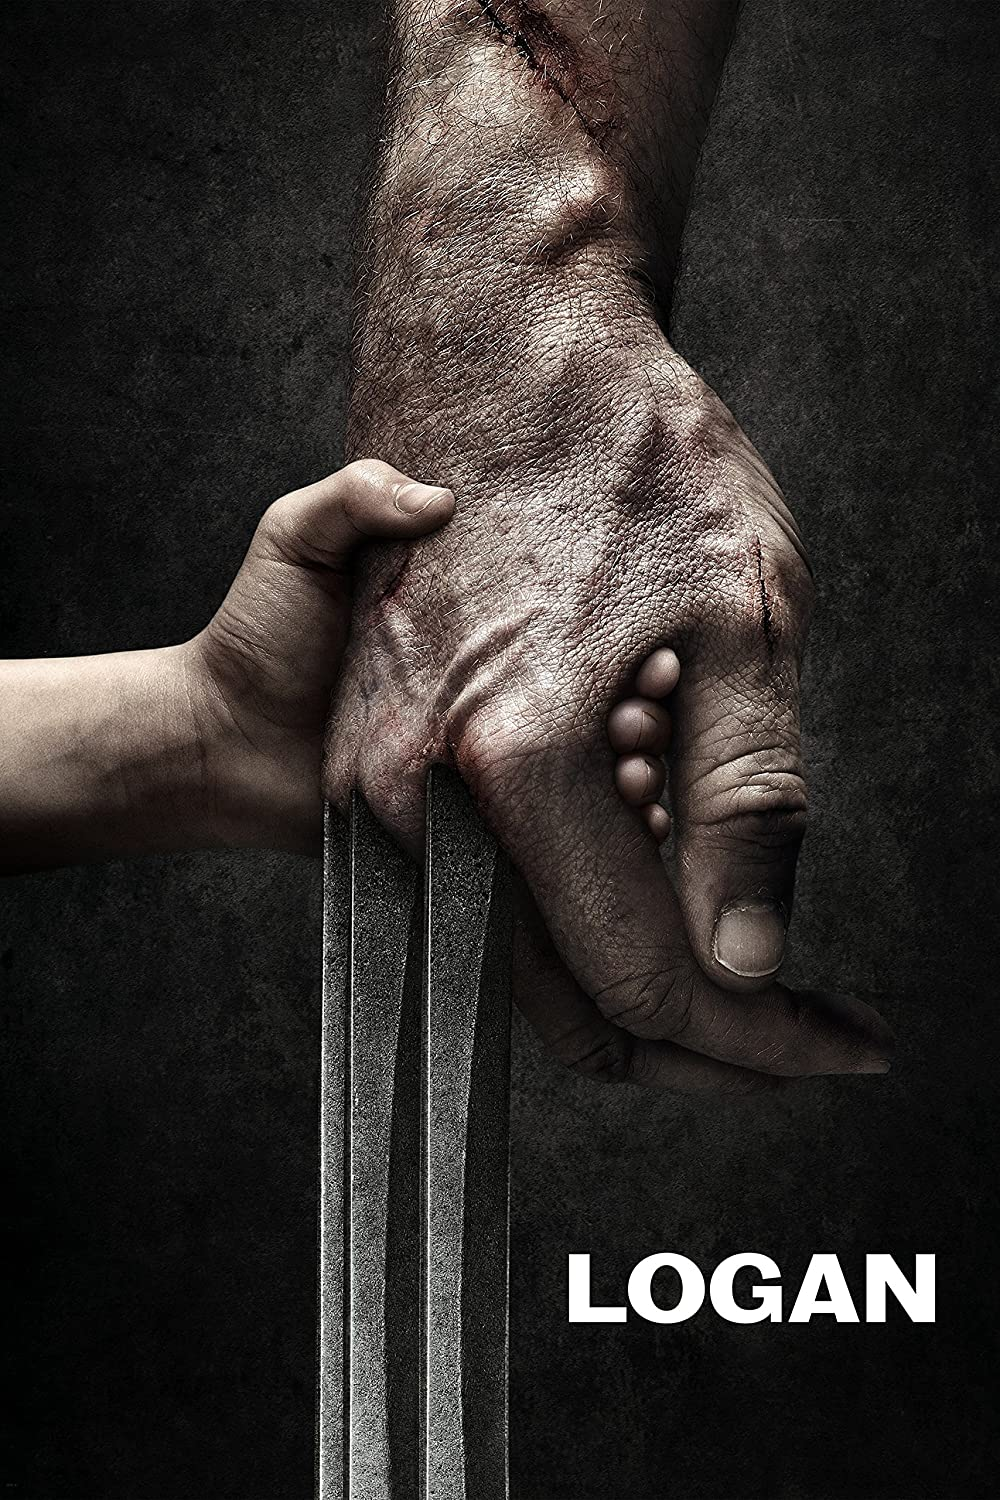 Black Creations Logan 5 Movie Poster Canvas Picture Art Print Premium Quality A0 A1 A2 A3 A4 (A0 Canvas (30 40))